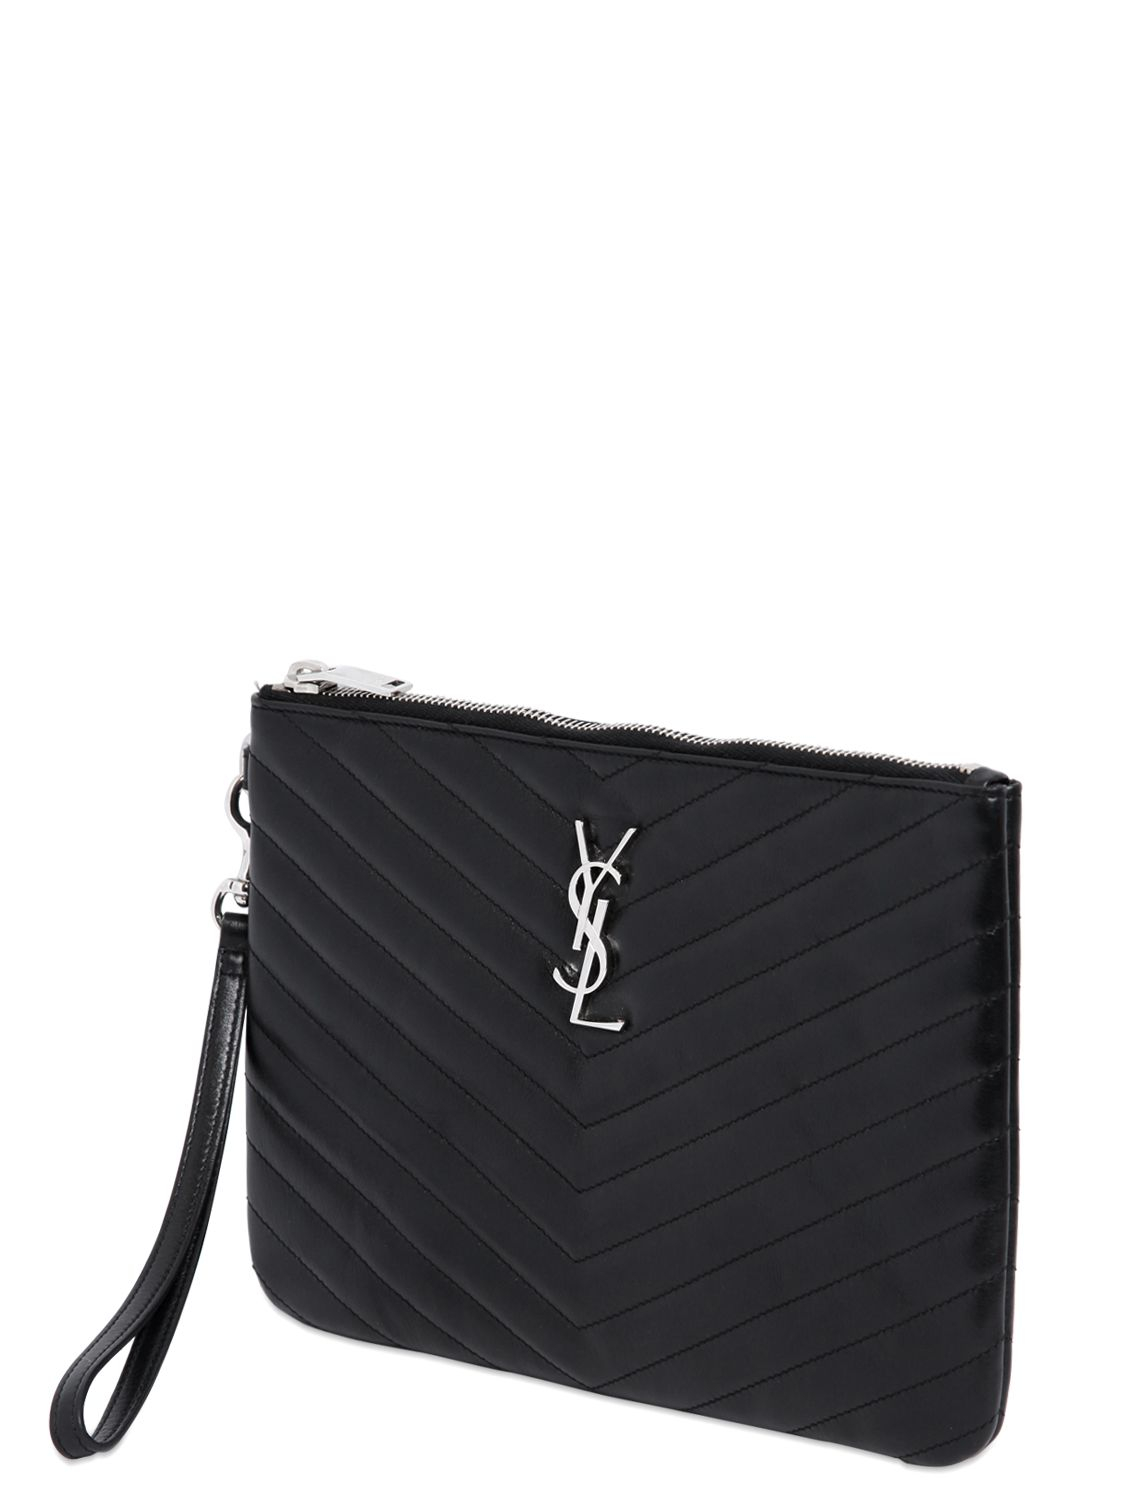 Saint Laurent Monogram Quilted Leather Pouch in Black - Lyst f40ec6d921612